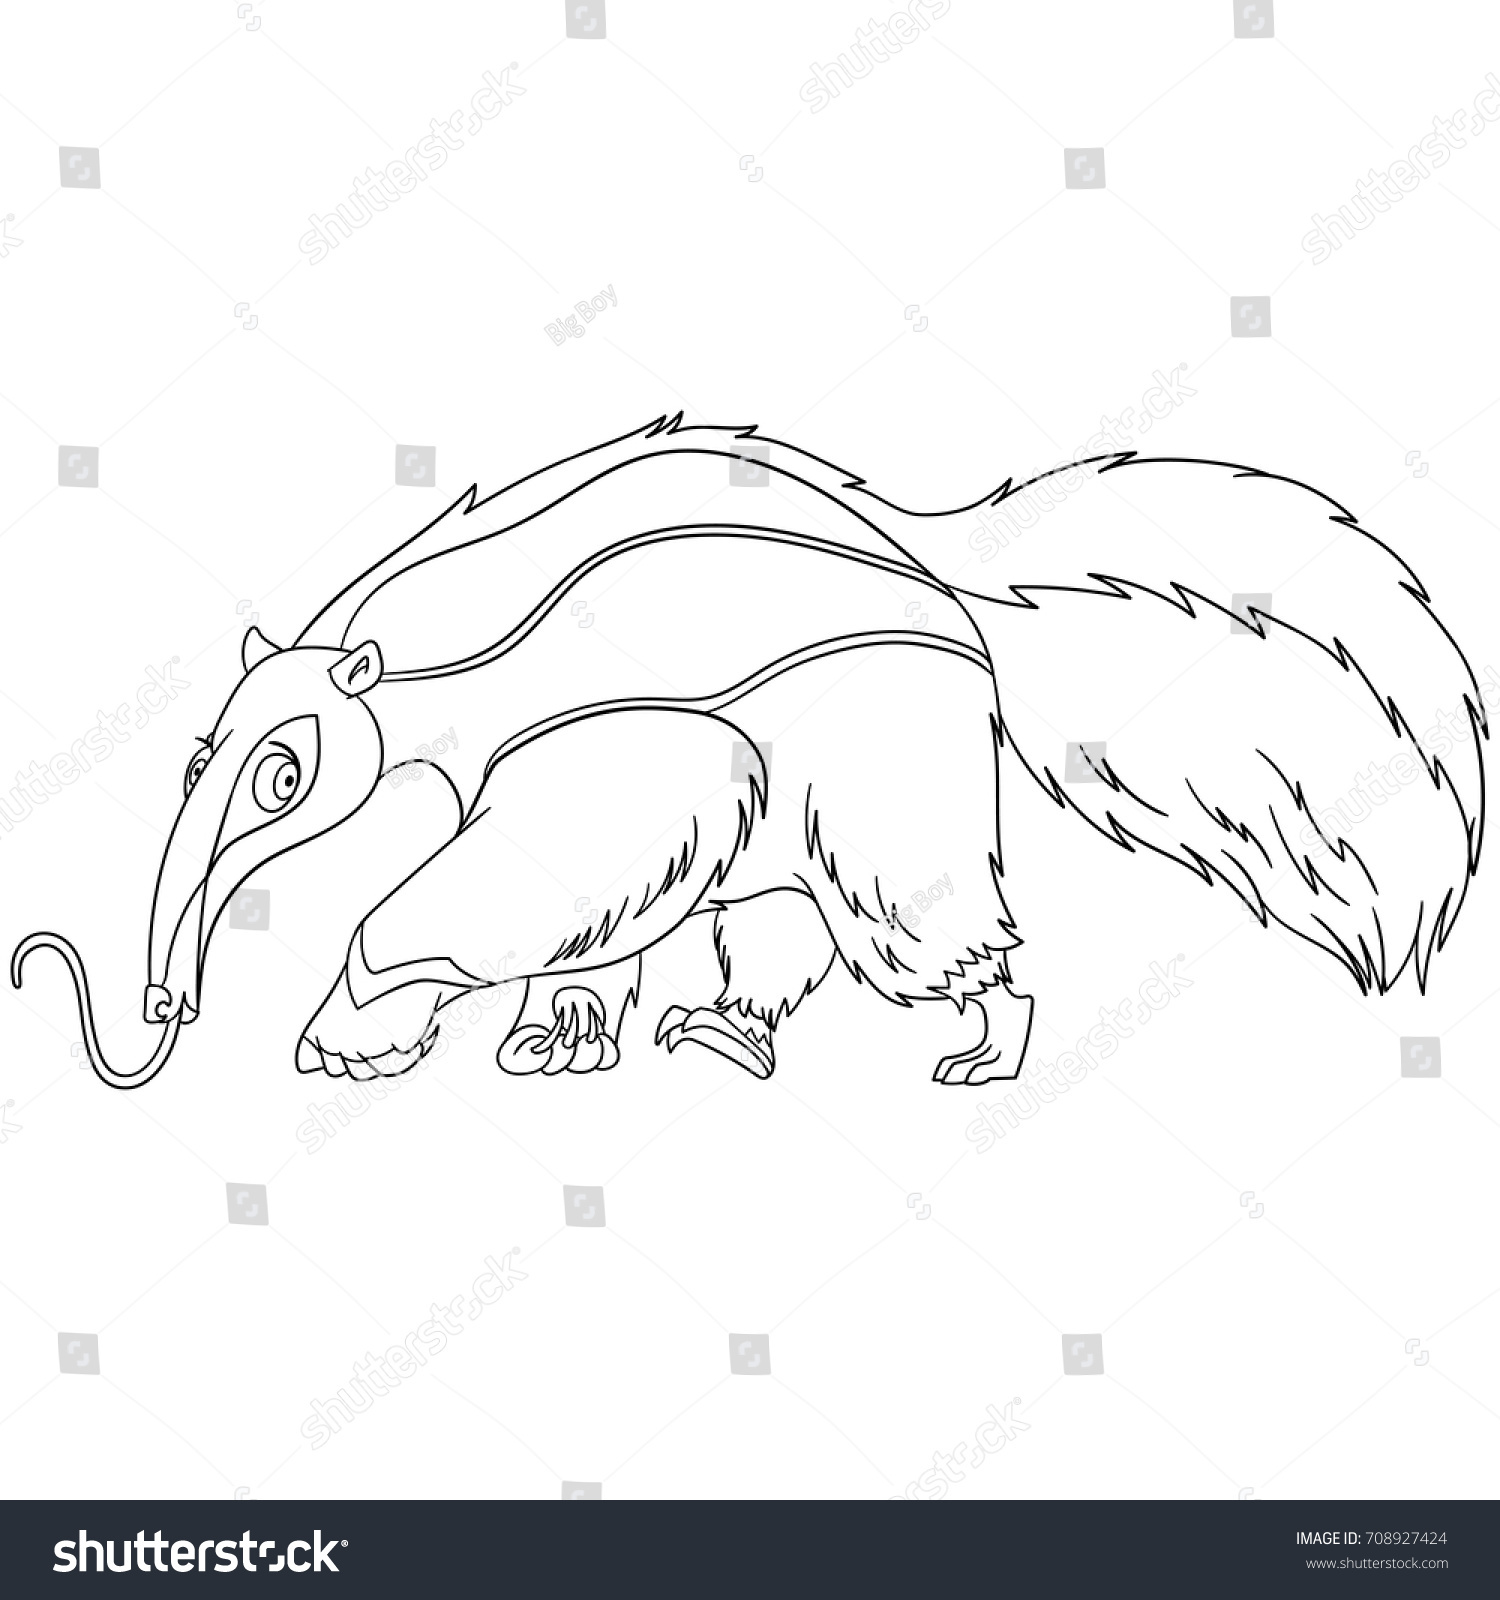 Coloring Page Cartoon Anteater Animal Coloring Stock Vector